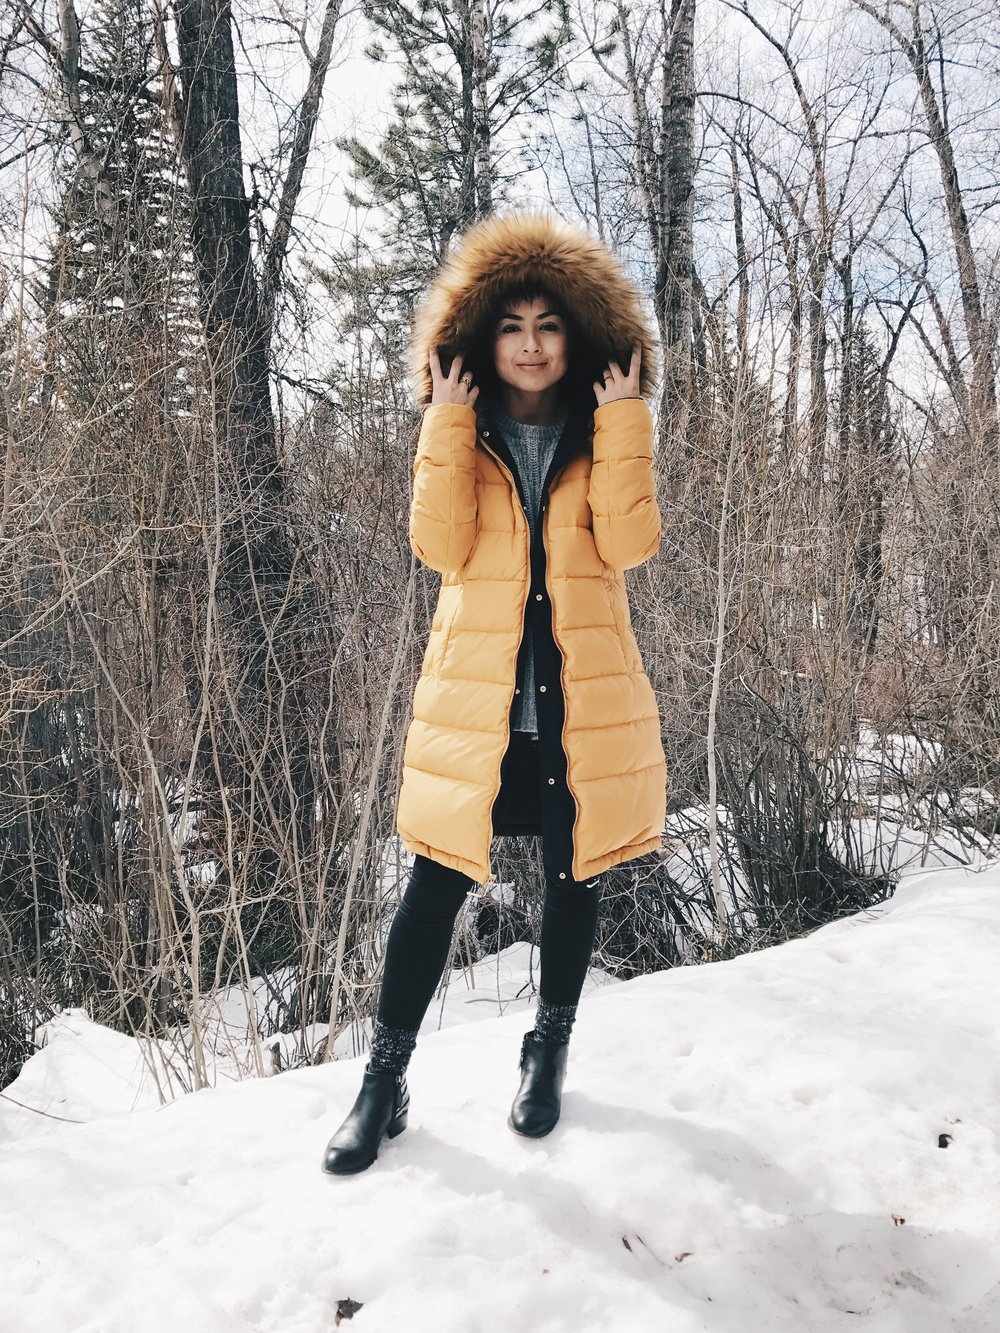 The snow might lead you to believe it was cold, but it was not bad. I wore this jacket because I bought it for Aspen- I had to wear it. Also, it's mustard yellow and I love it.